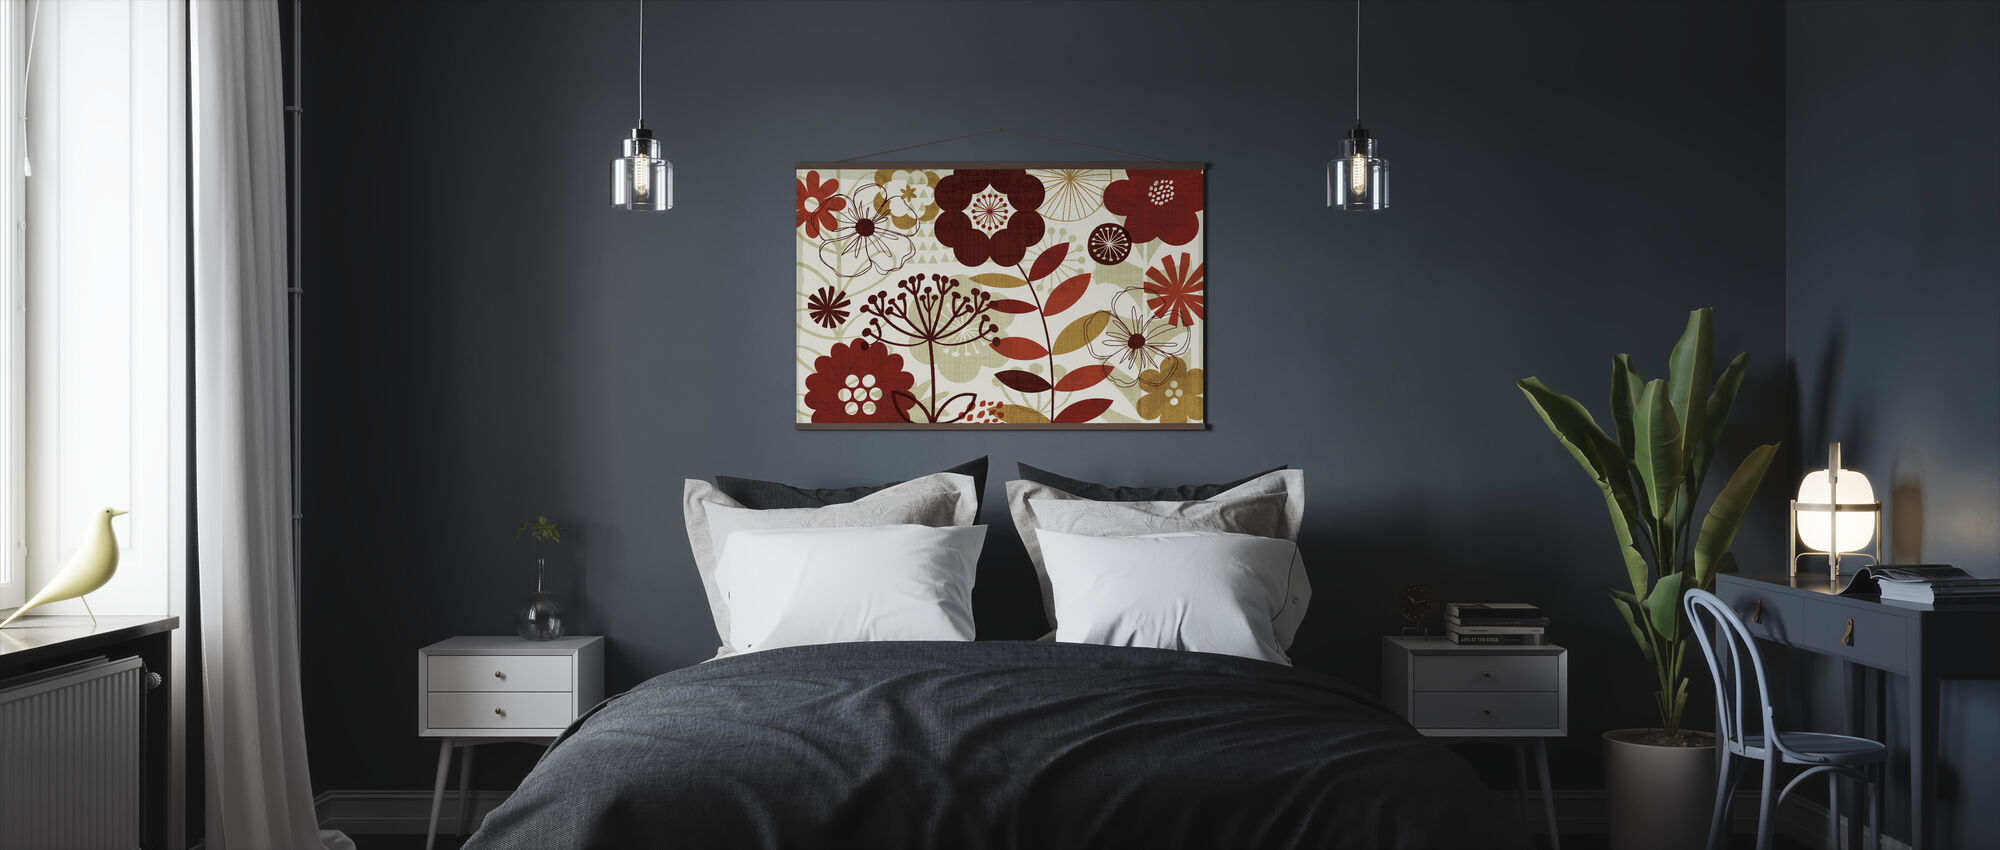 Floral Pop I - Poster - Bedroom